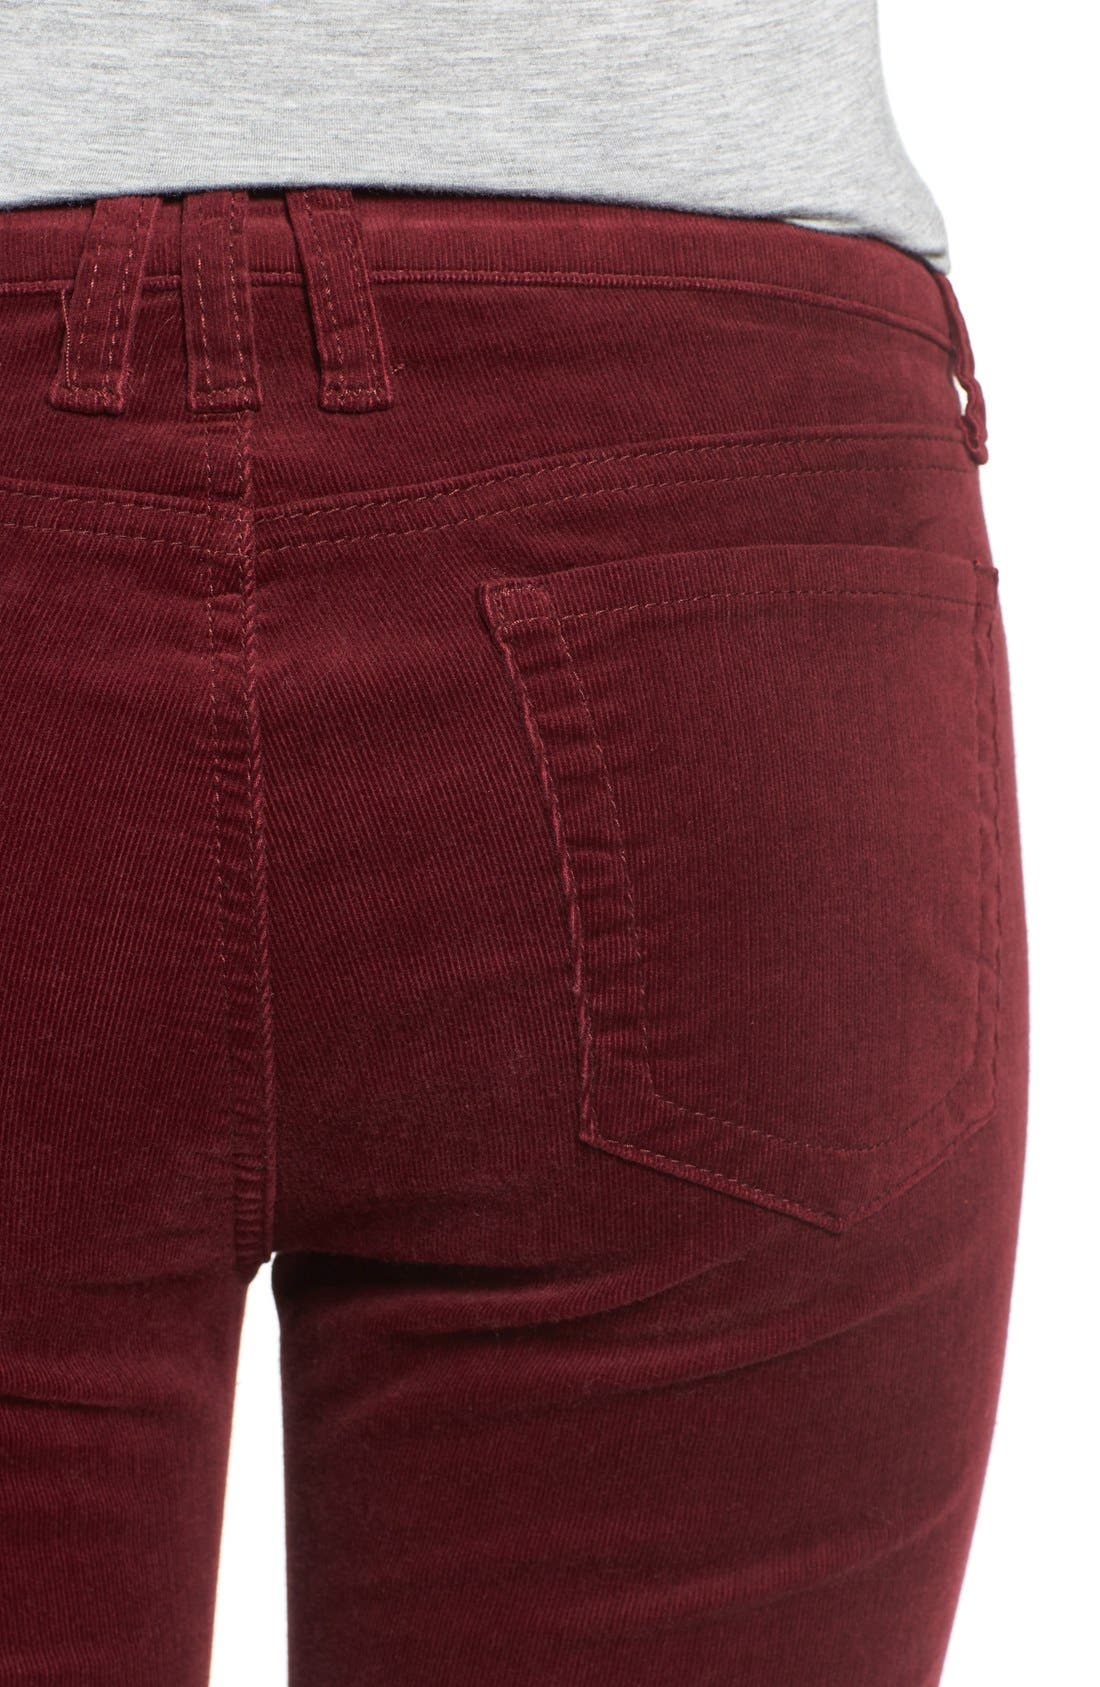 Alternate Image 4  - KUT from the Kloth Diana Stretch Corduroy Skinny Pants (Regular & Petite)